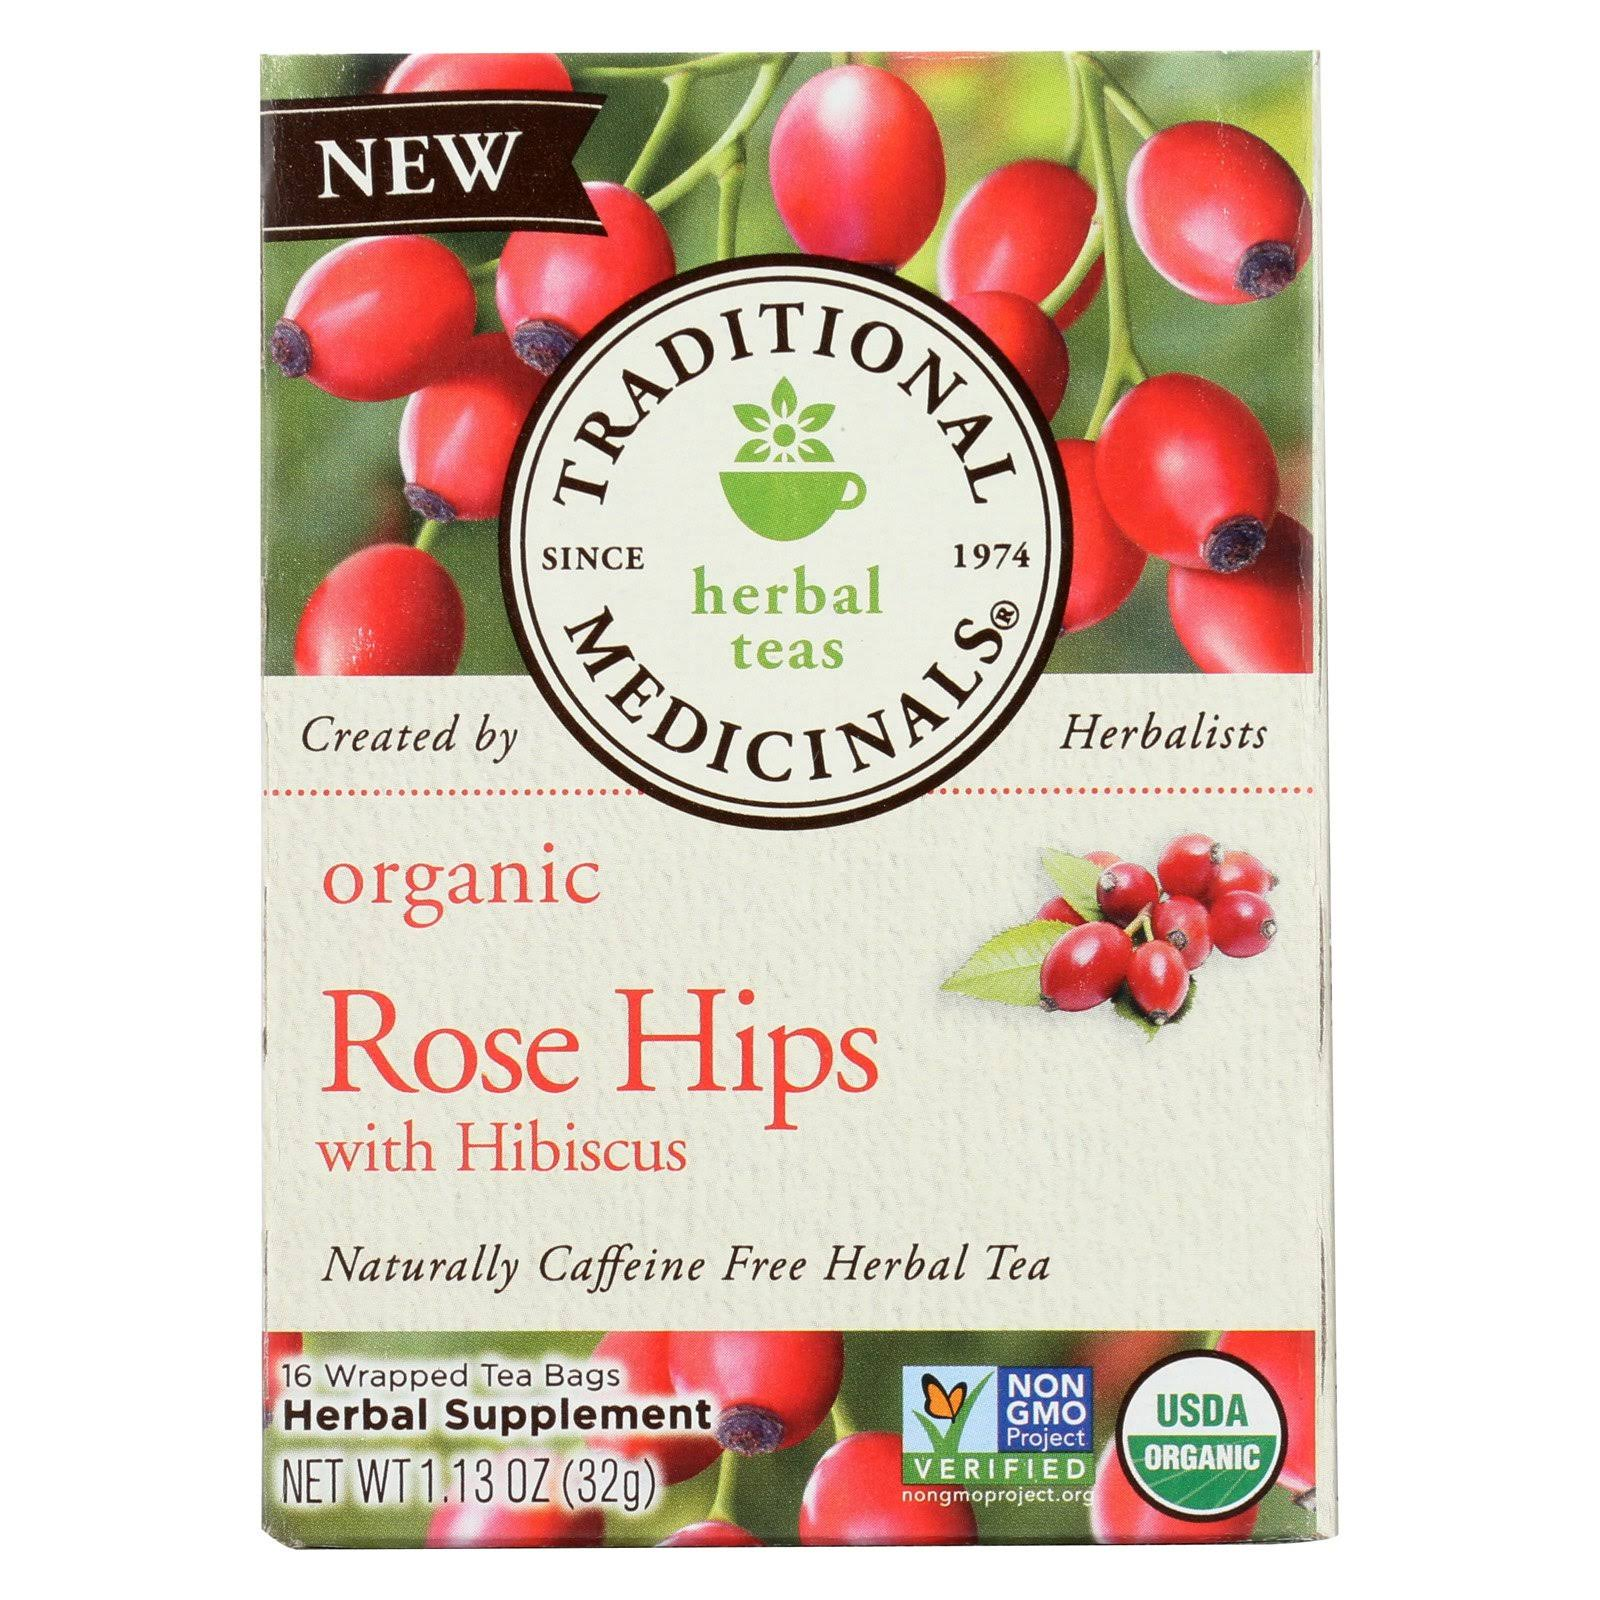 Traditional Medicinals Organic Herbal Tea, Rose Hips with Hibiscus - 16 tea bags, 1.13 oz box